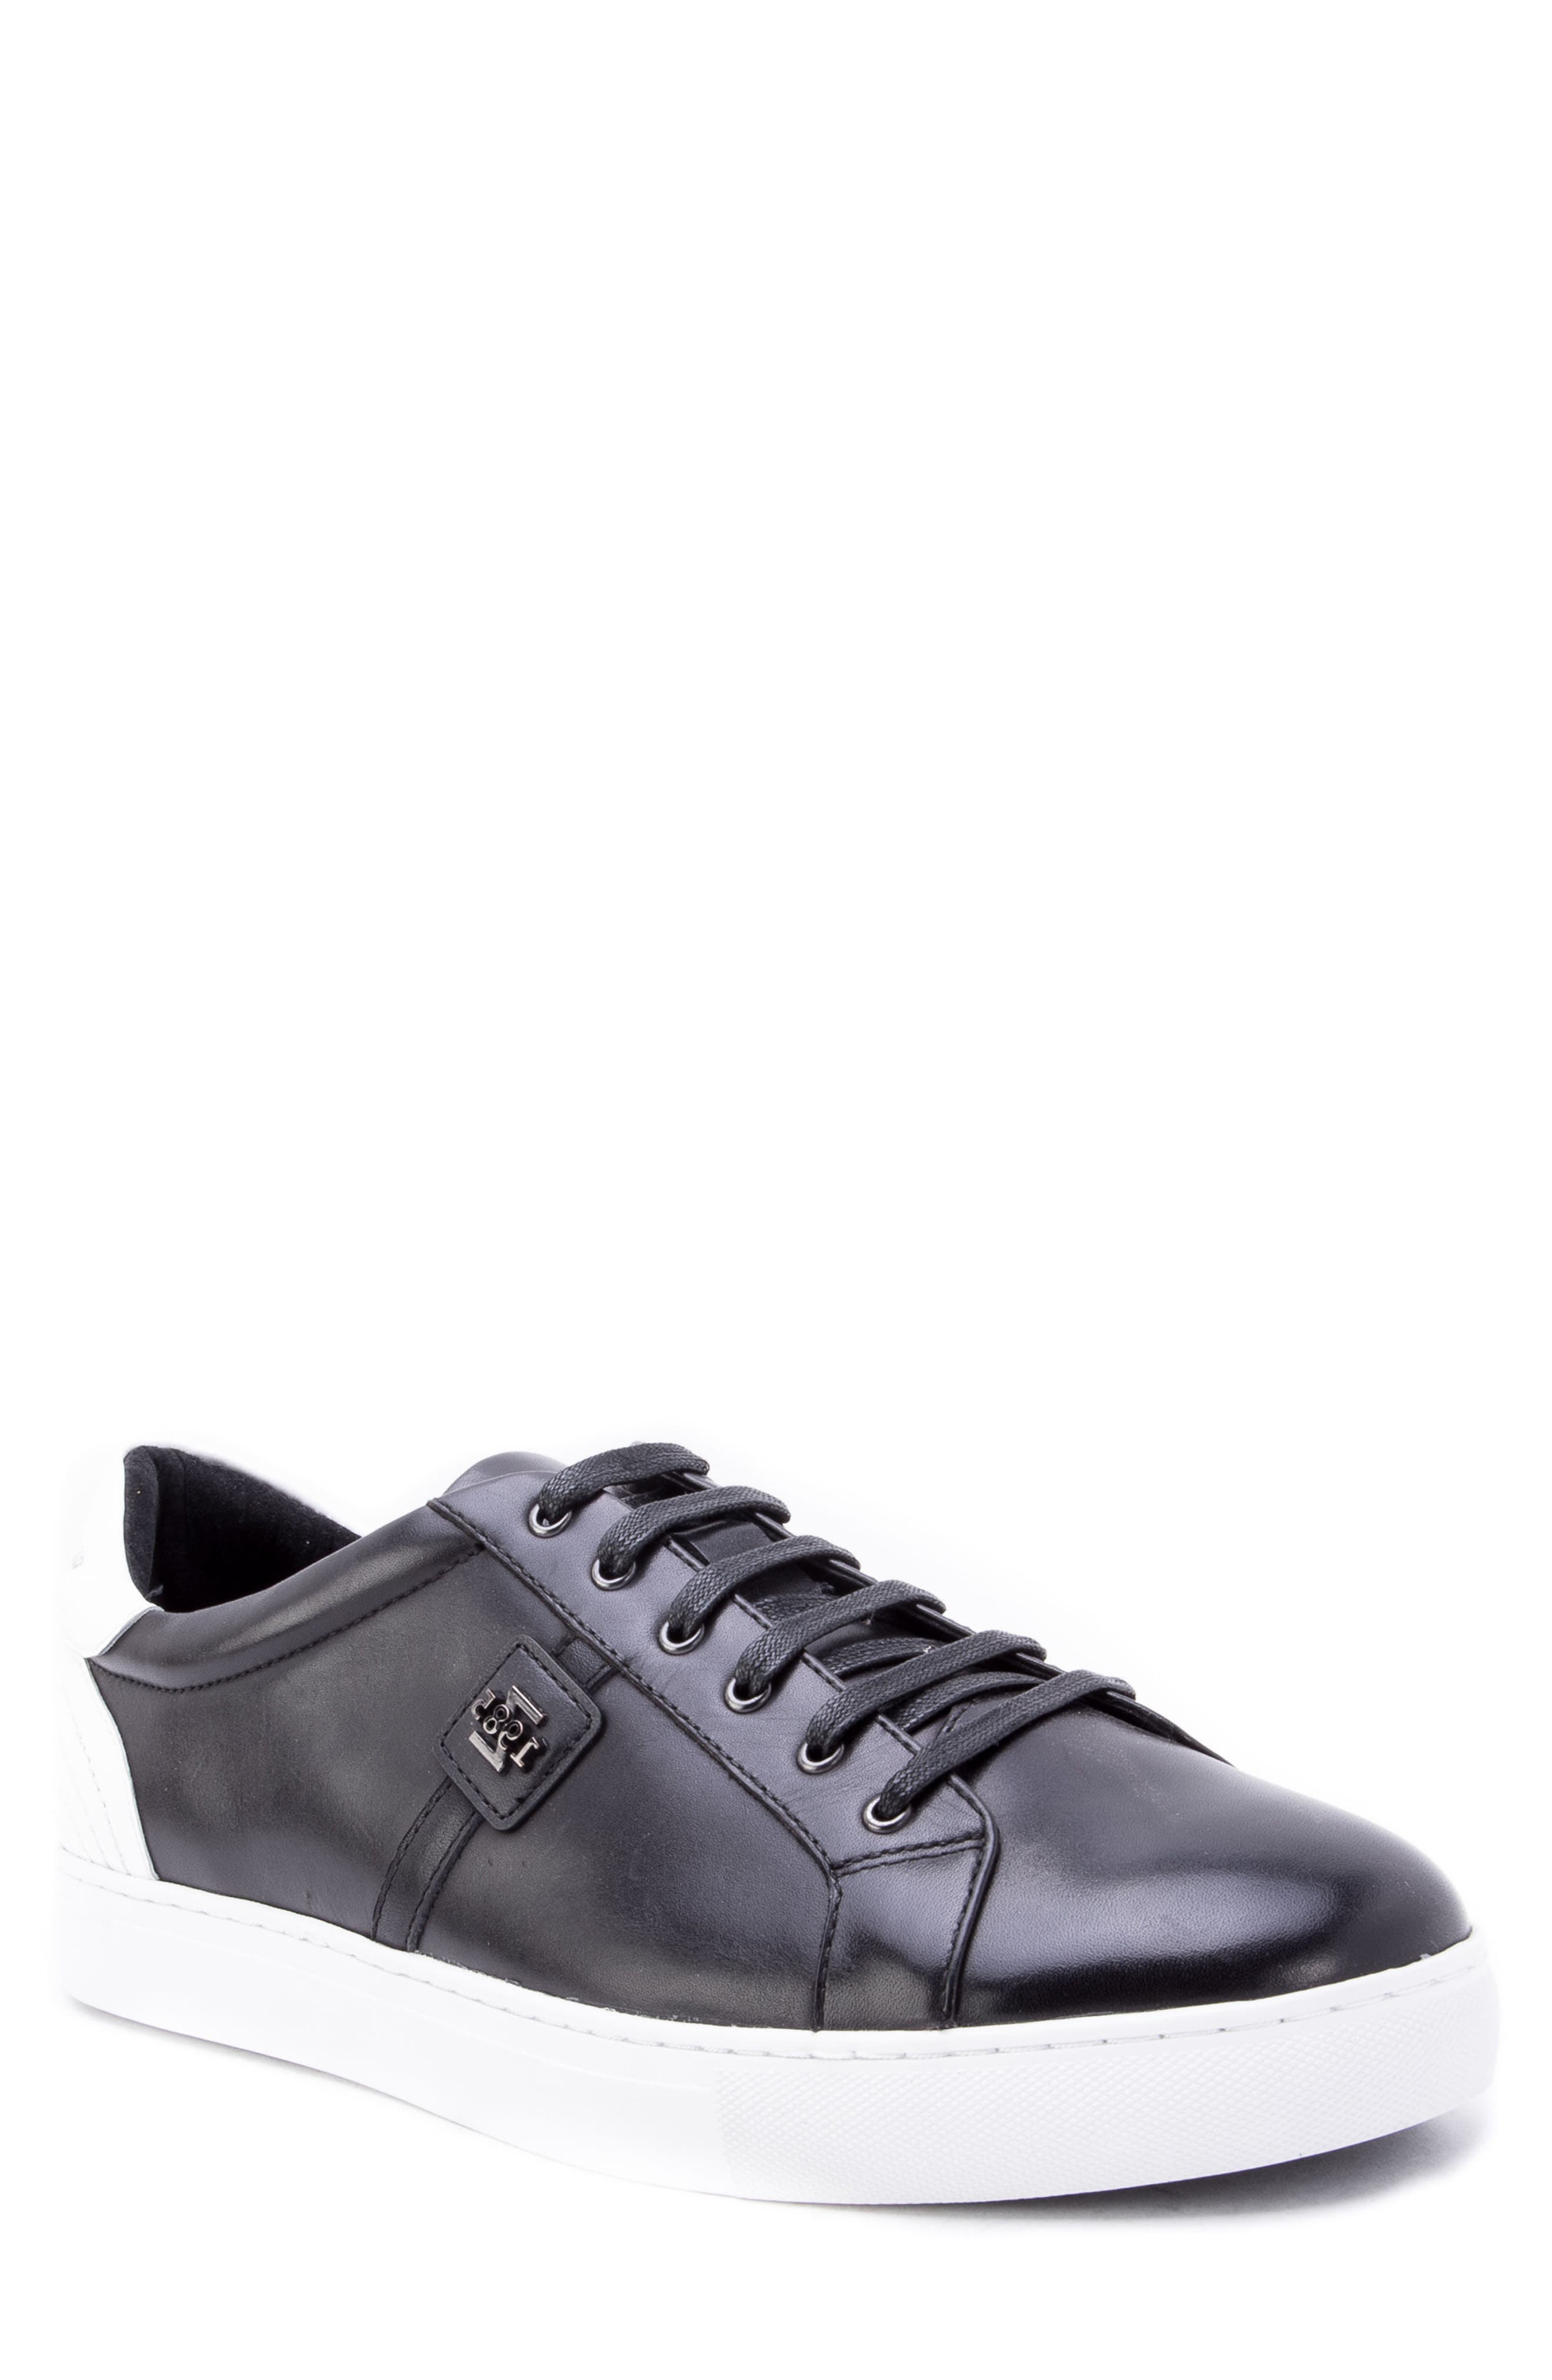 Scheffer Low Top Sneaker,                             Main thumbnail 1, color,                             BLACK LEATHER